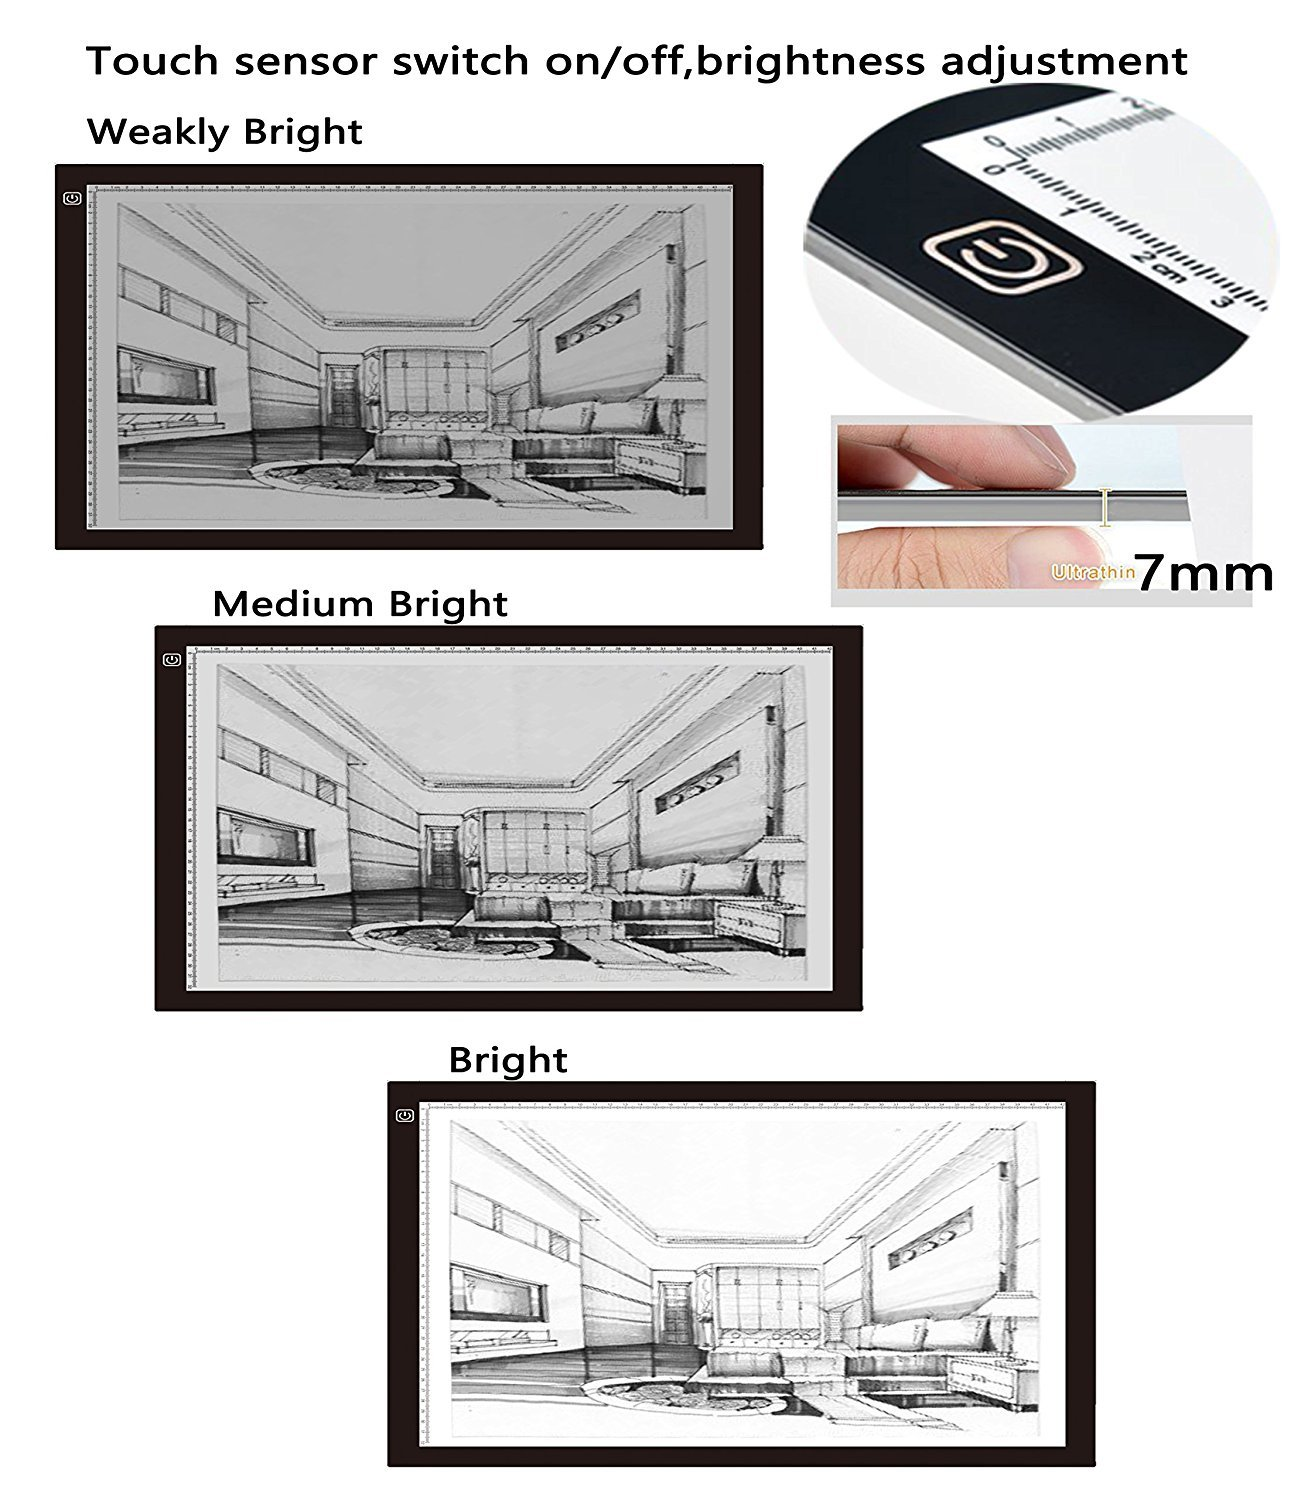 British Plug Painting Tattoo Sketch Animation Photograph Designed for the Artist Super Thin A2 Light Box USB Power LED Drawing Copy Tracing Light Box Track Light with Brightness Adjustable